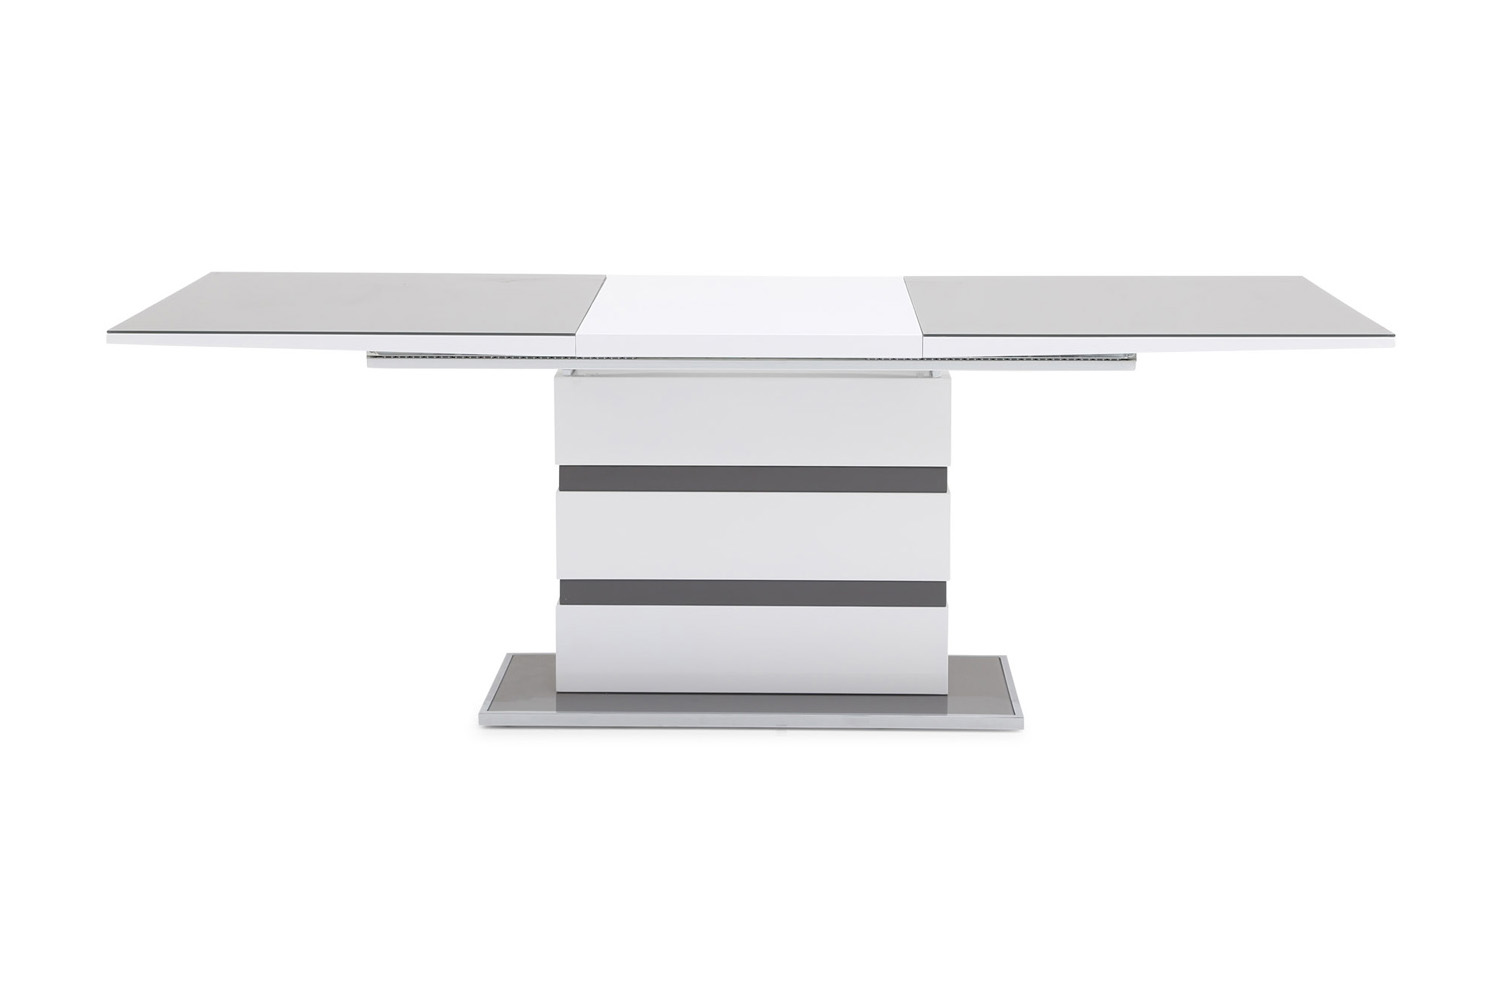 https://www.firstfurniture.co.uk/pub/media/catalog/product/a/r/armano_table_opened_1_1.jpg